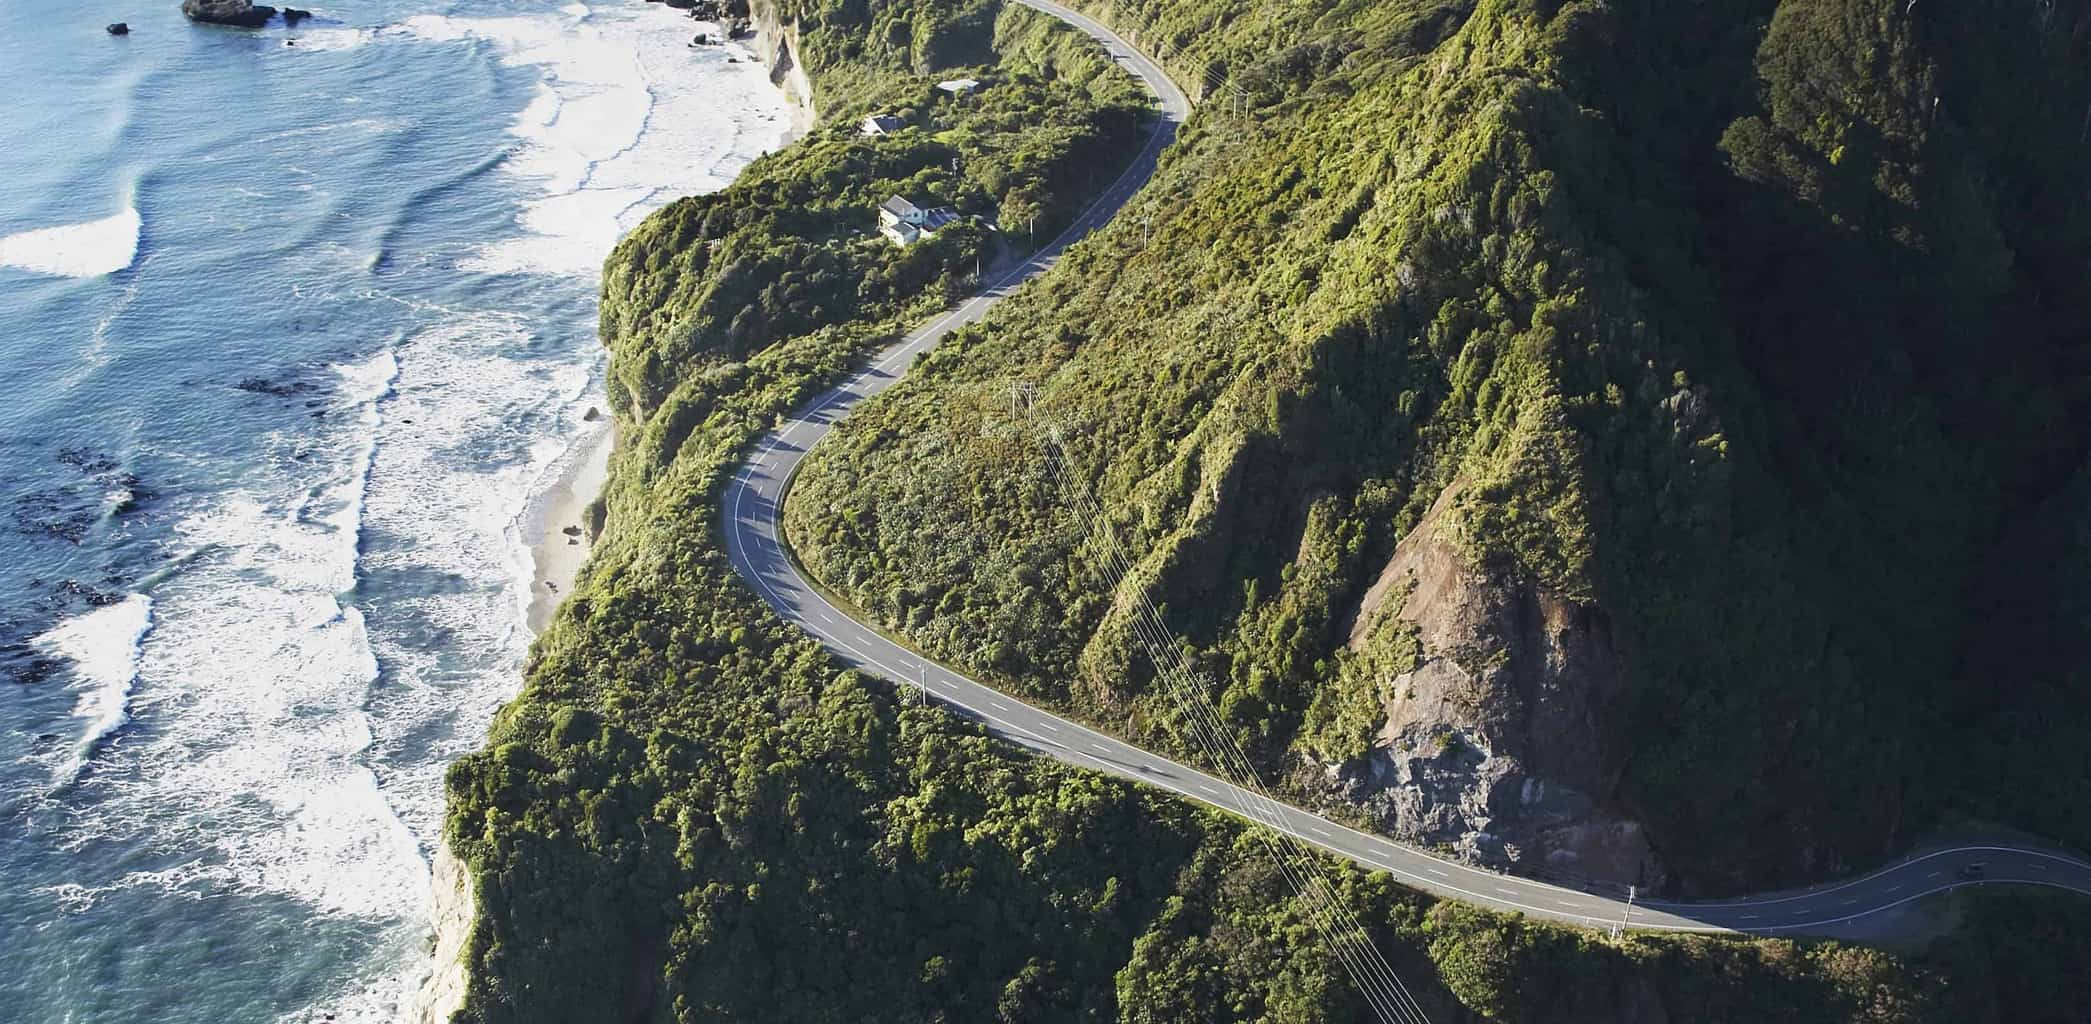 Top 10: The Best Road Trips in the U.S. and Around the World